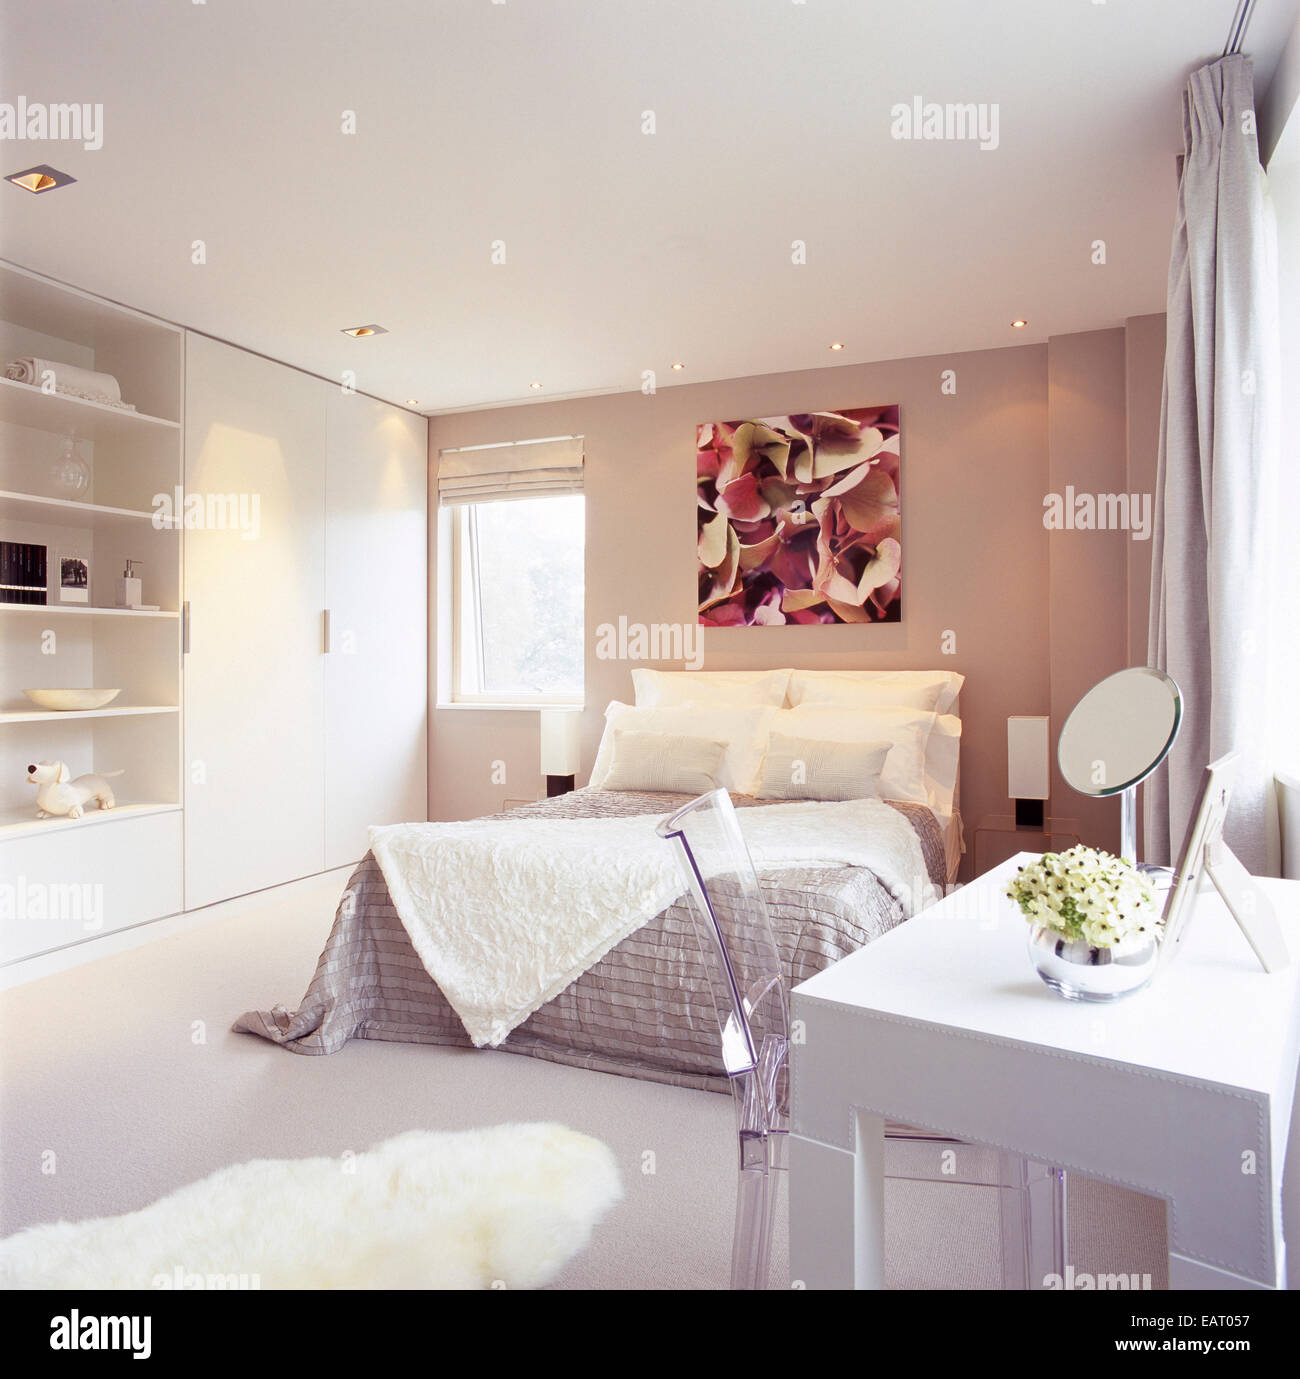 A modern bedroom with double bed, dressing table with a transparent perspex  chair, fitted wardrobe